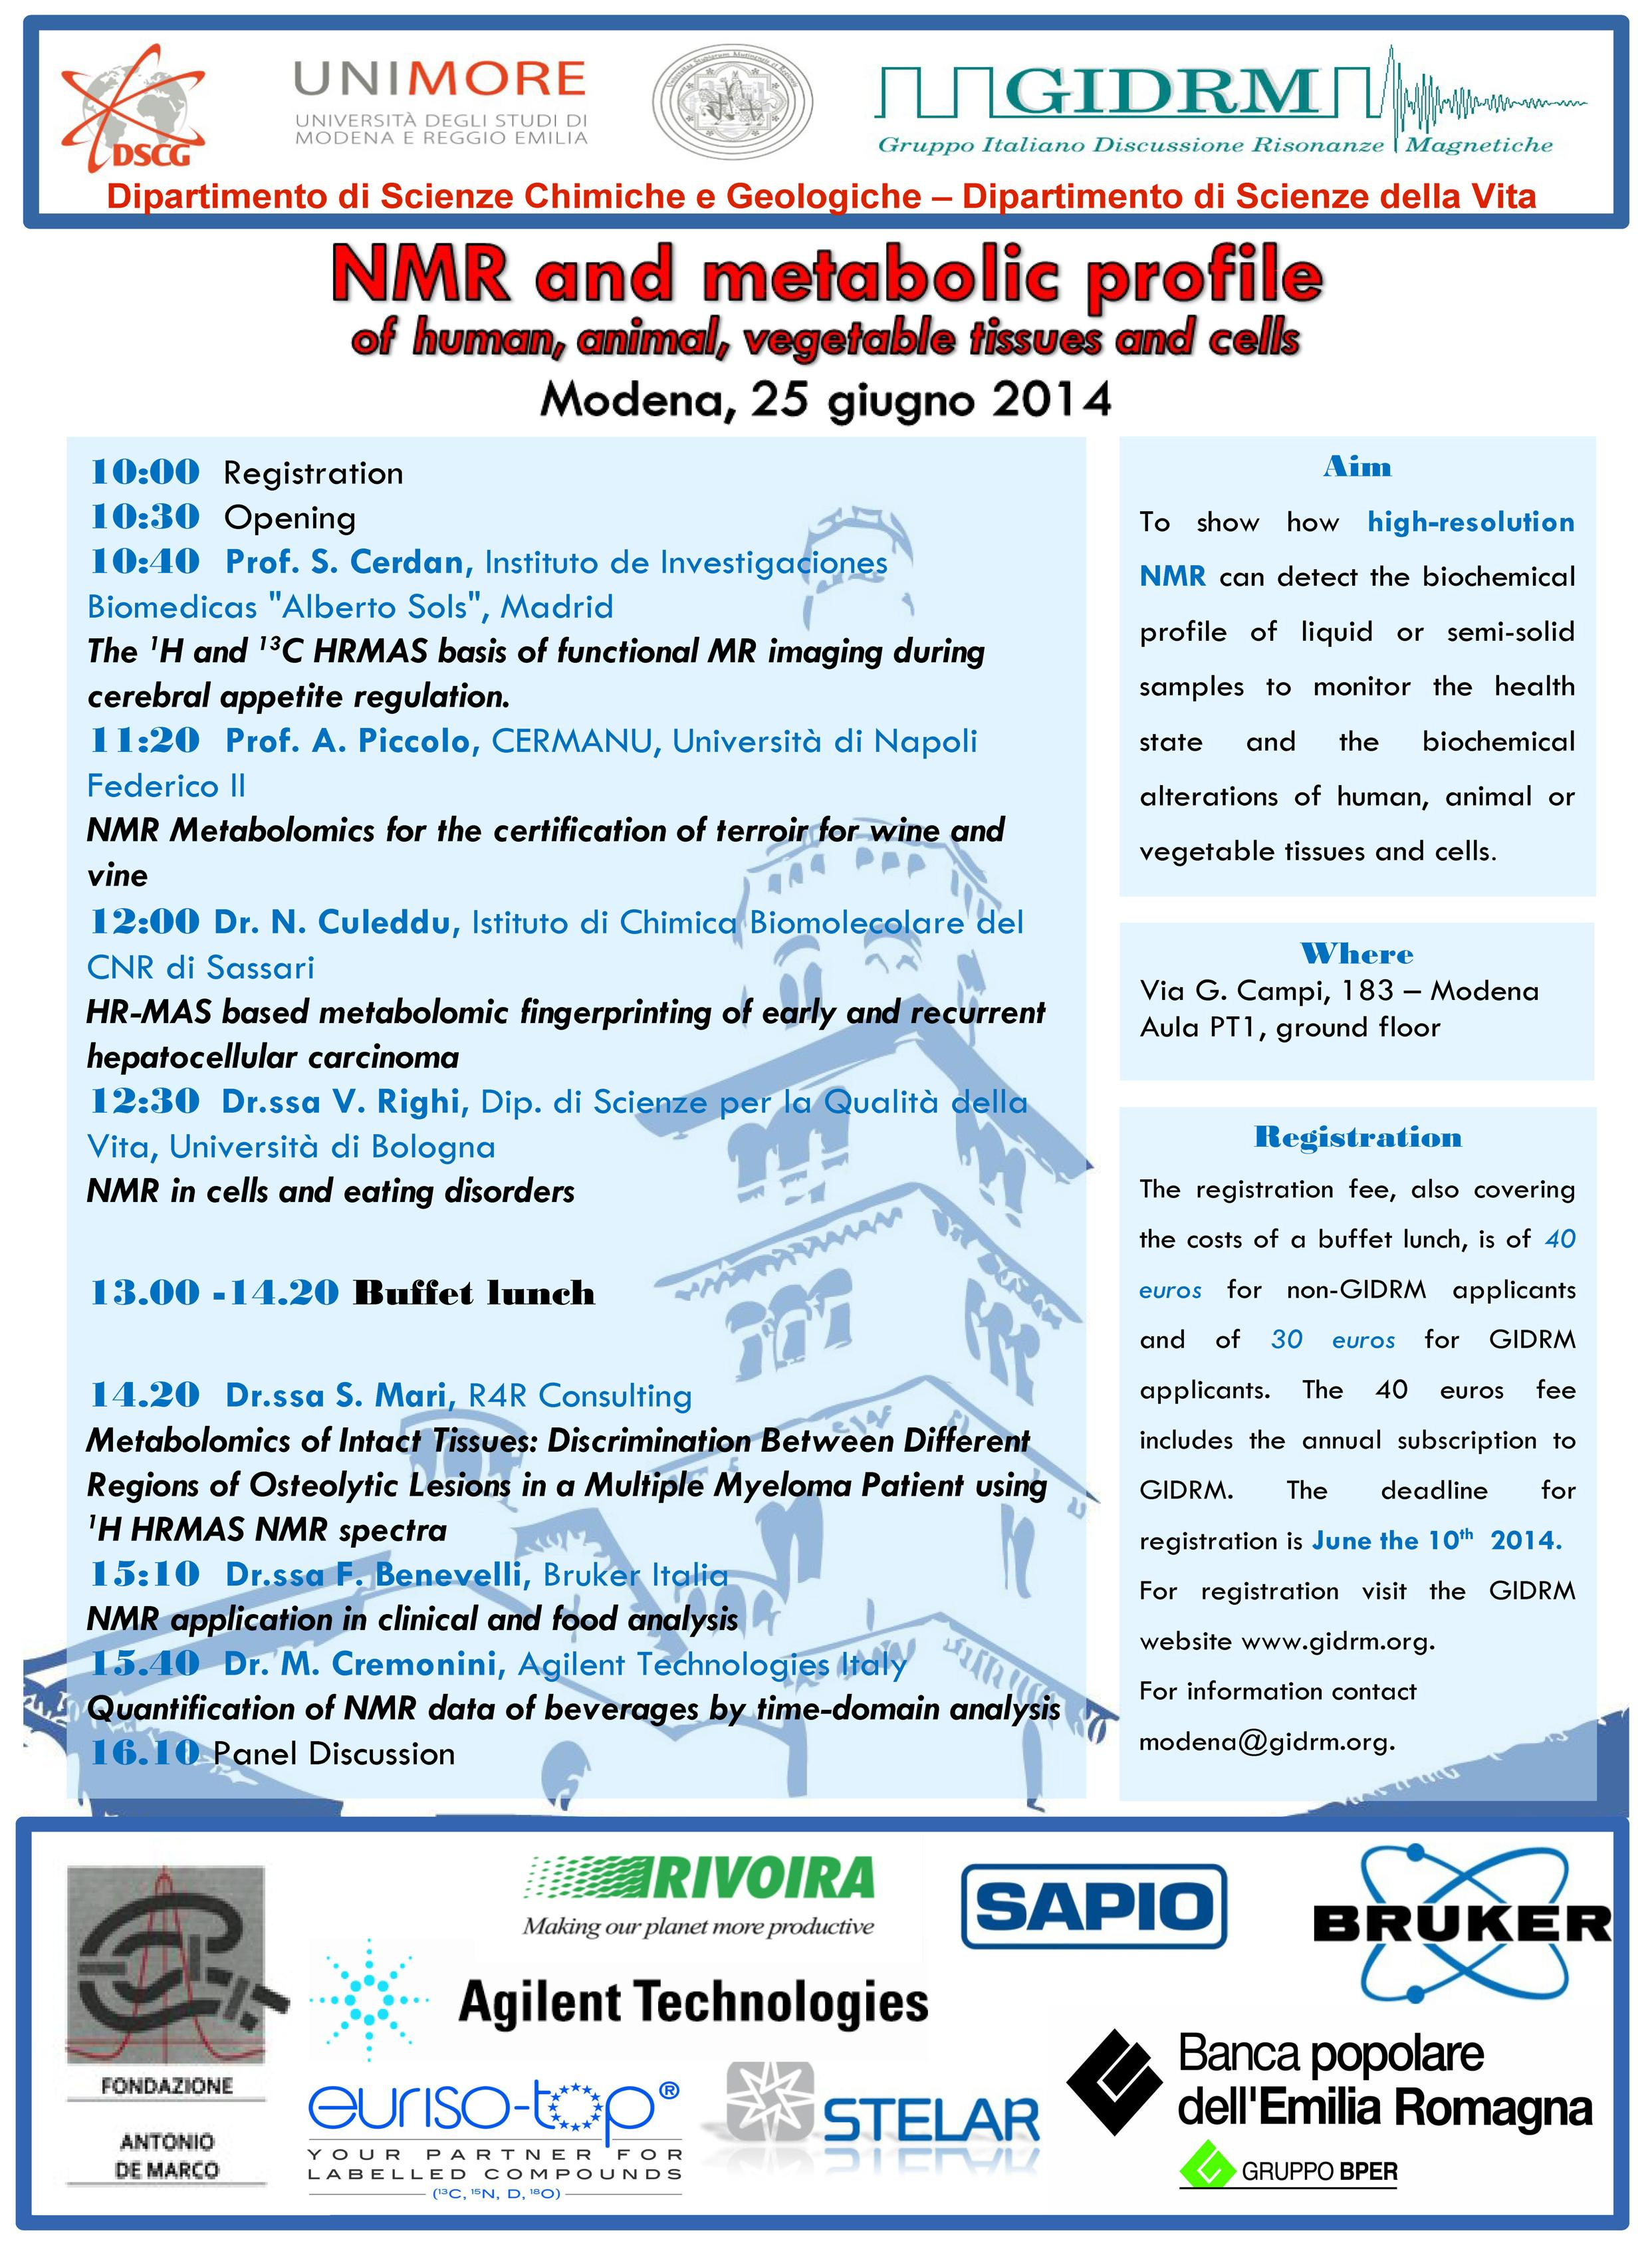 Workshop Modena 25 giugno 2014